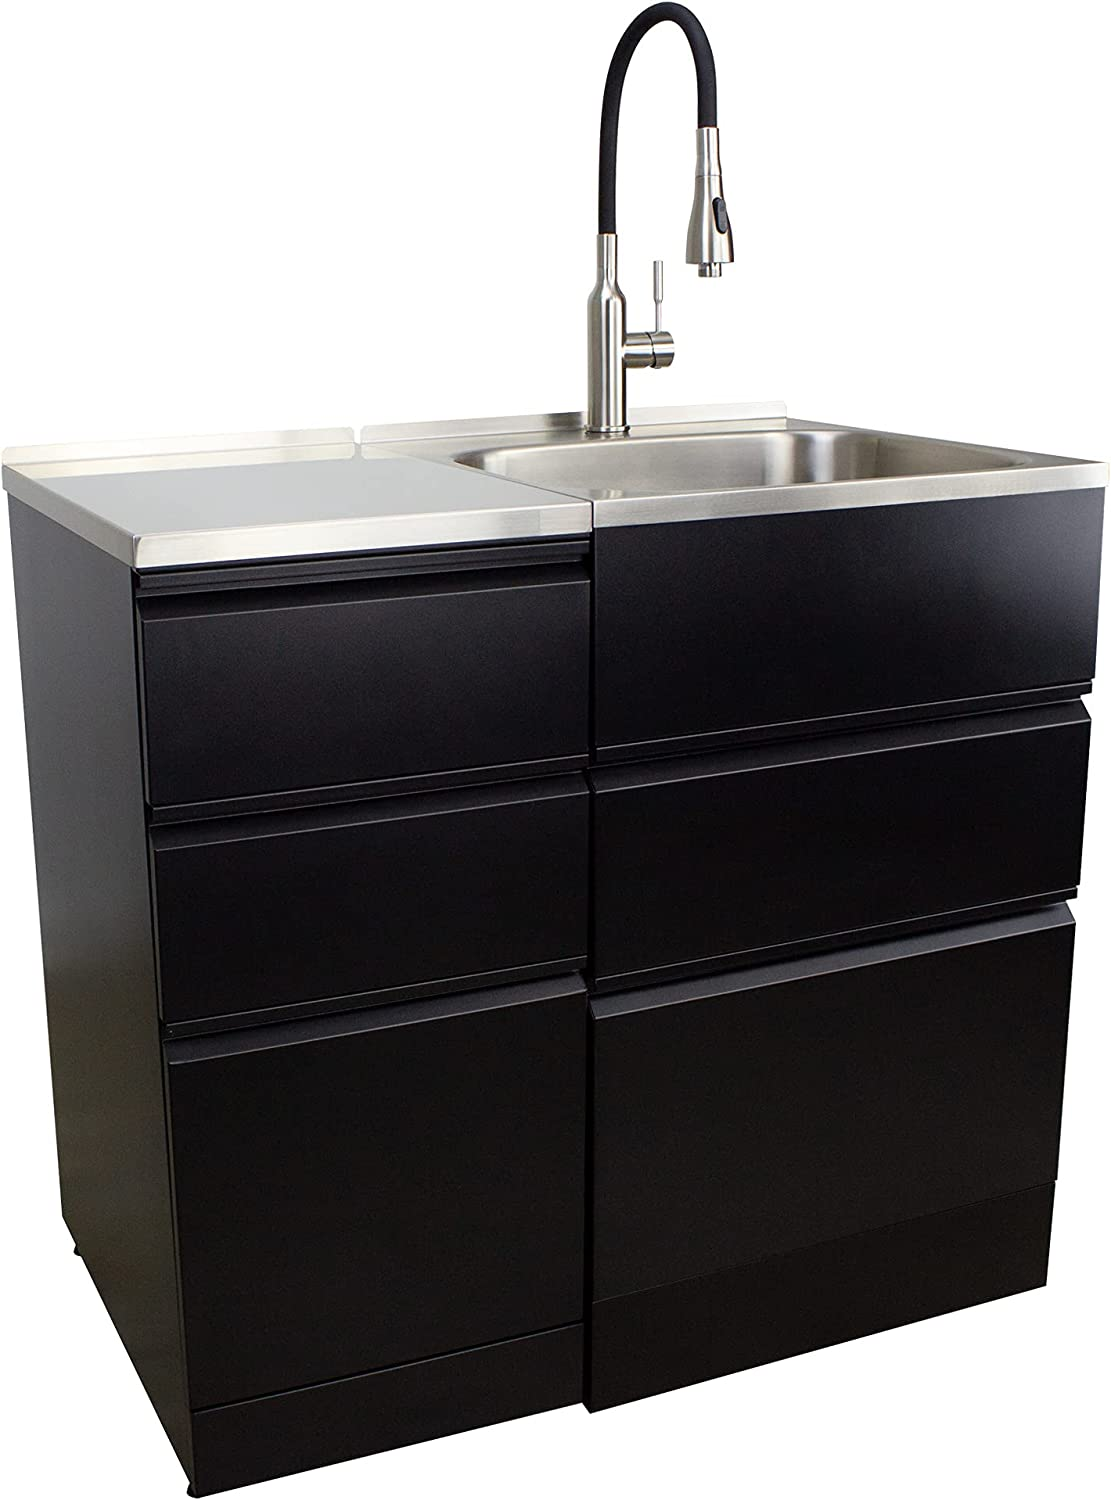 Transolid KW-2222-BB All-in-One 44.8 in. New product Metal 22 35 x Max 44% OFF